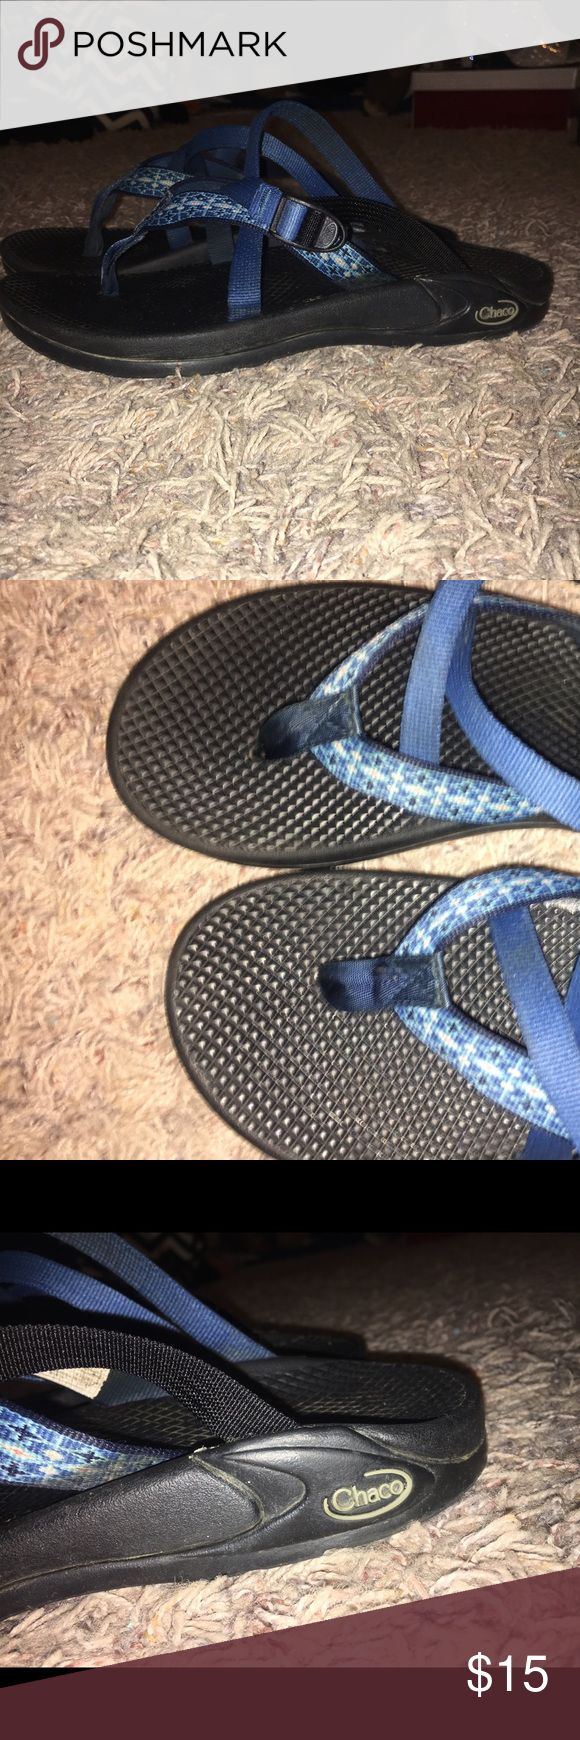 Women's Blue Chaco Sandals Blue Strappy Women's Chaco Sandals! Worn about three times, very comfy. Straps are adjustable! Size 9. Chaco Shoes Sandals